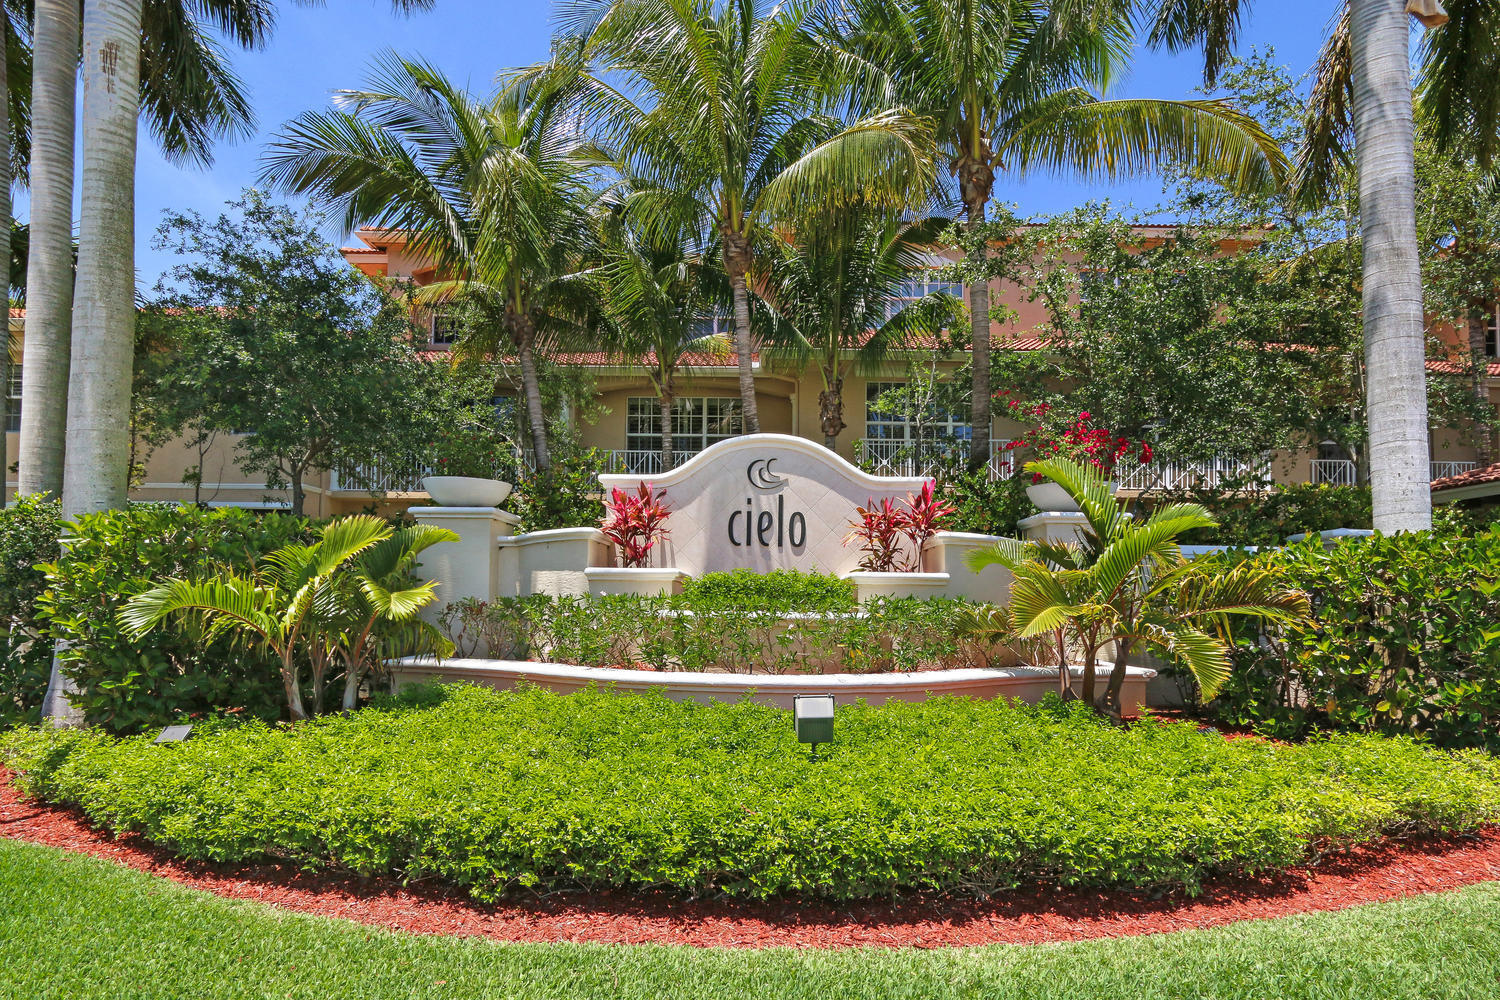 Cielo Palm Beach Gardens Townhomes & Real Estate For Sale | Jeff ...